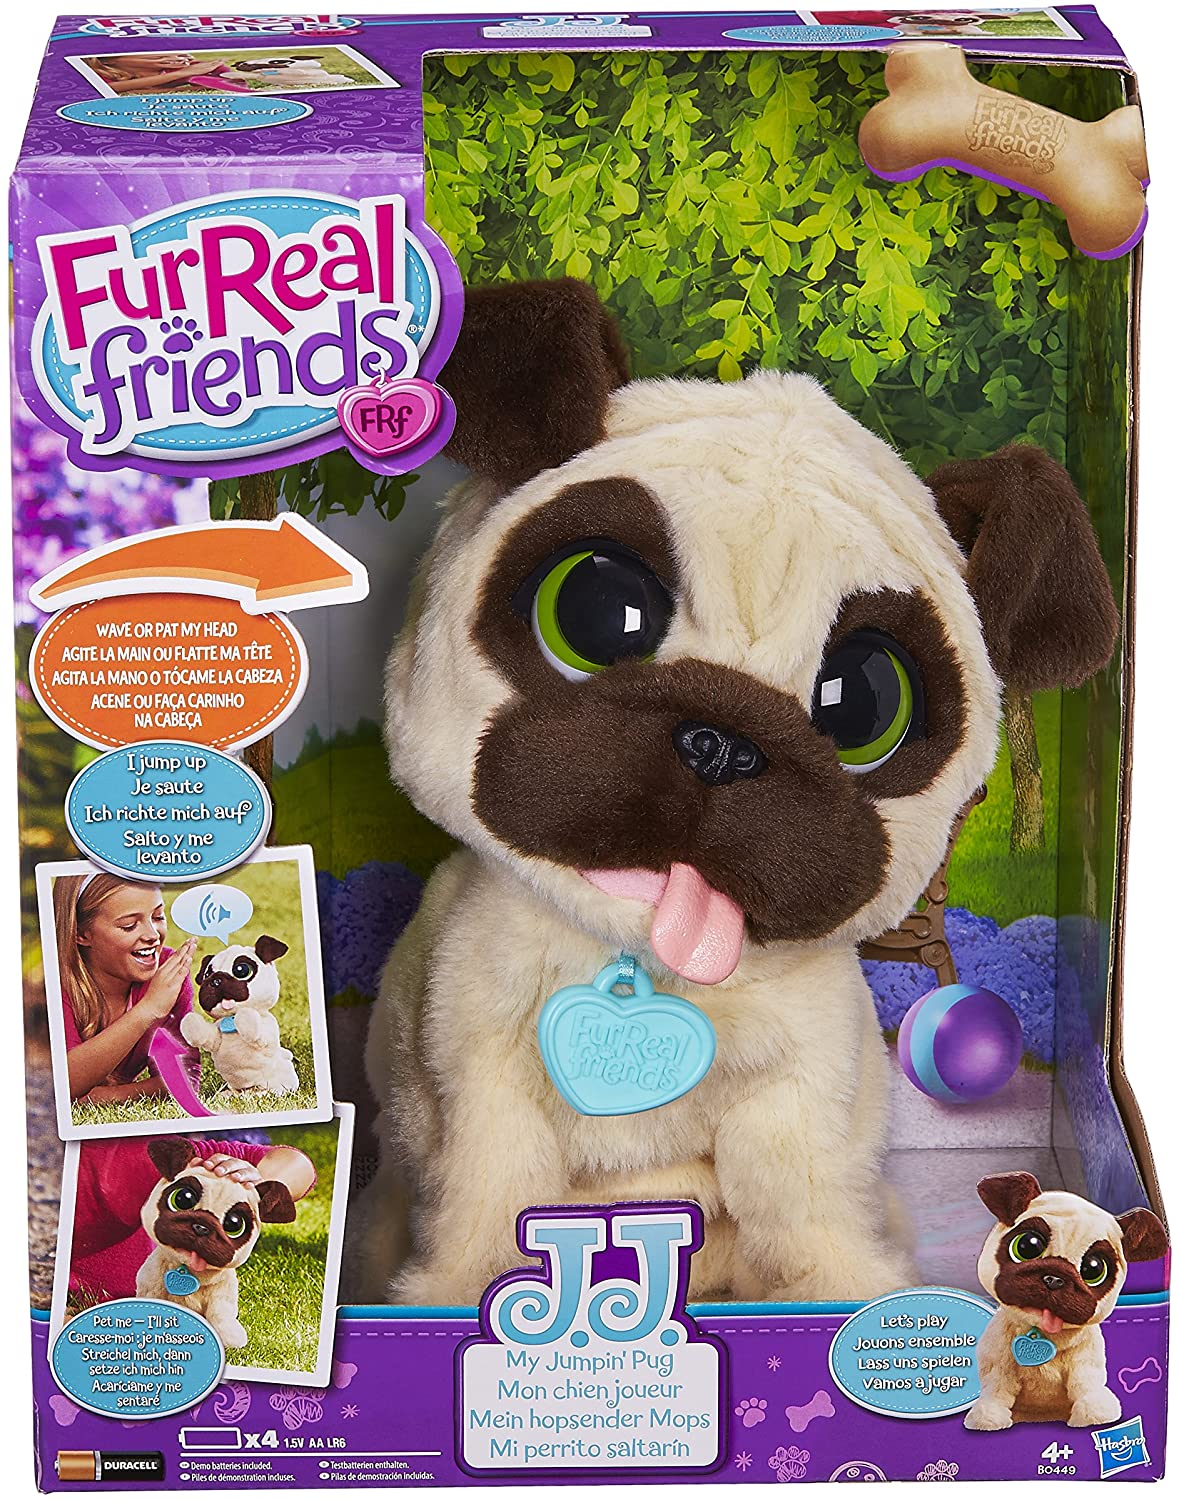 FurReal friends JJ, My Jumpin' Pug Pet